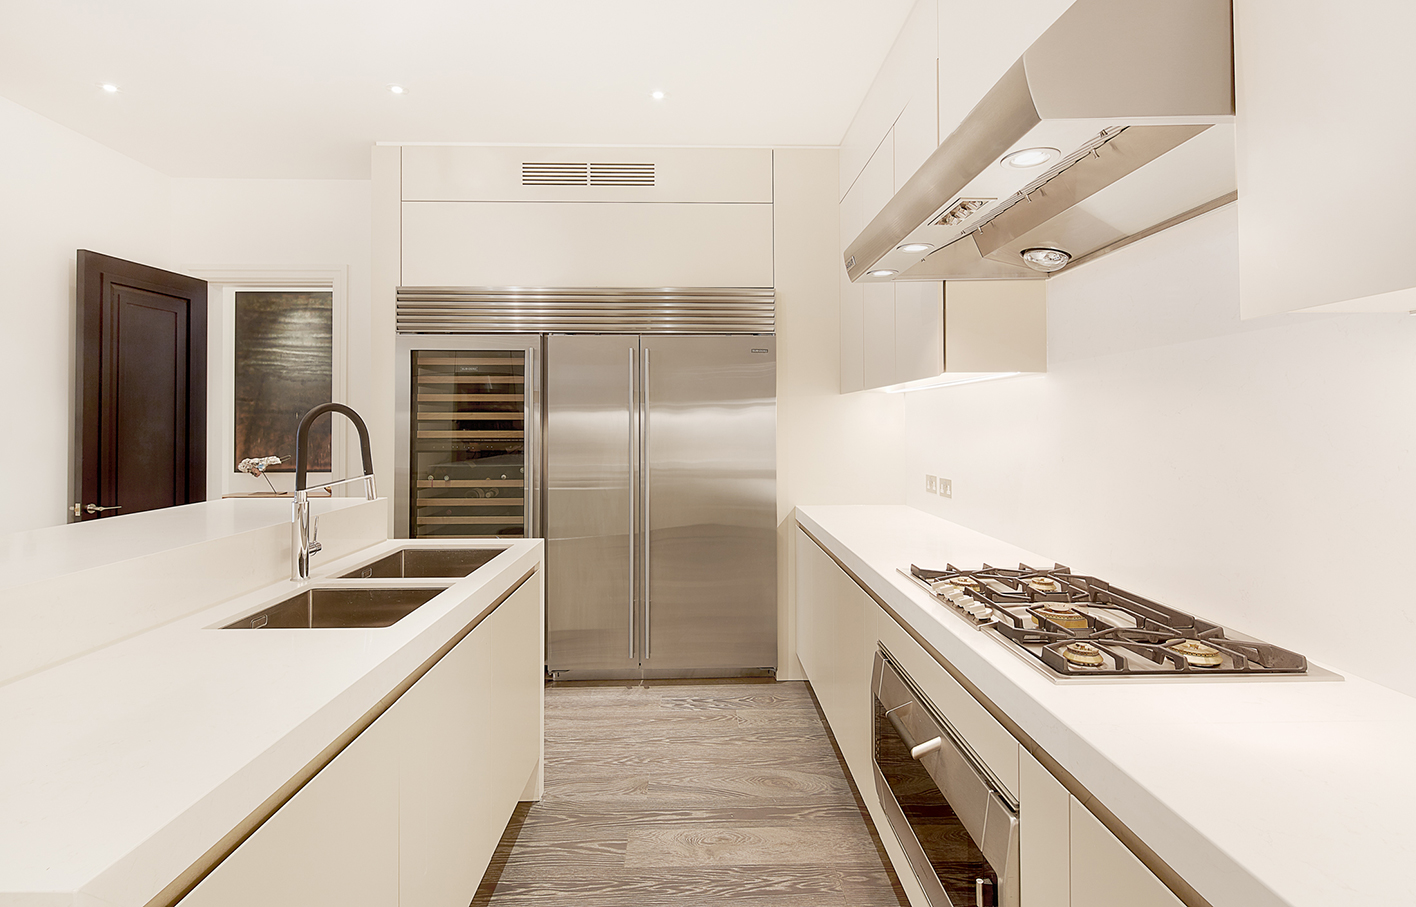 Aldworth James & Bond | Chelsea Residence | Kitchen with in-built Gaggenau appliances